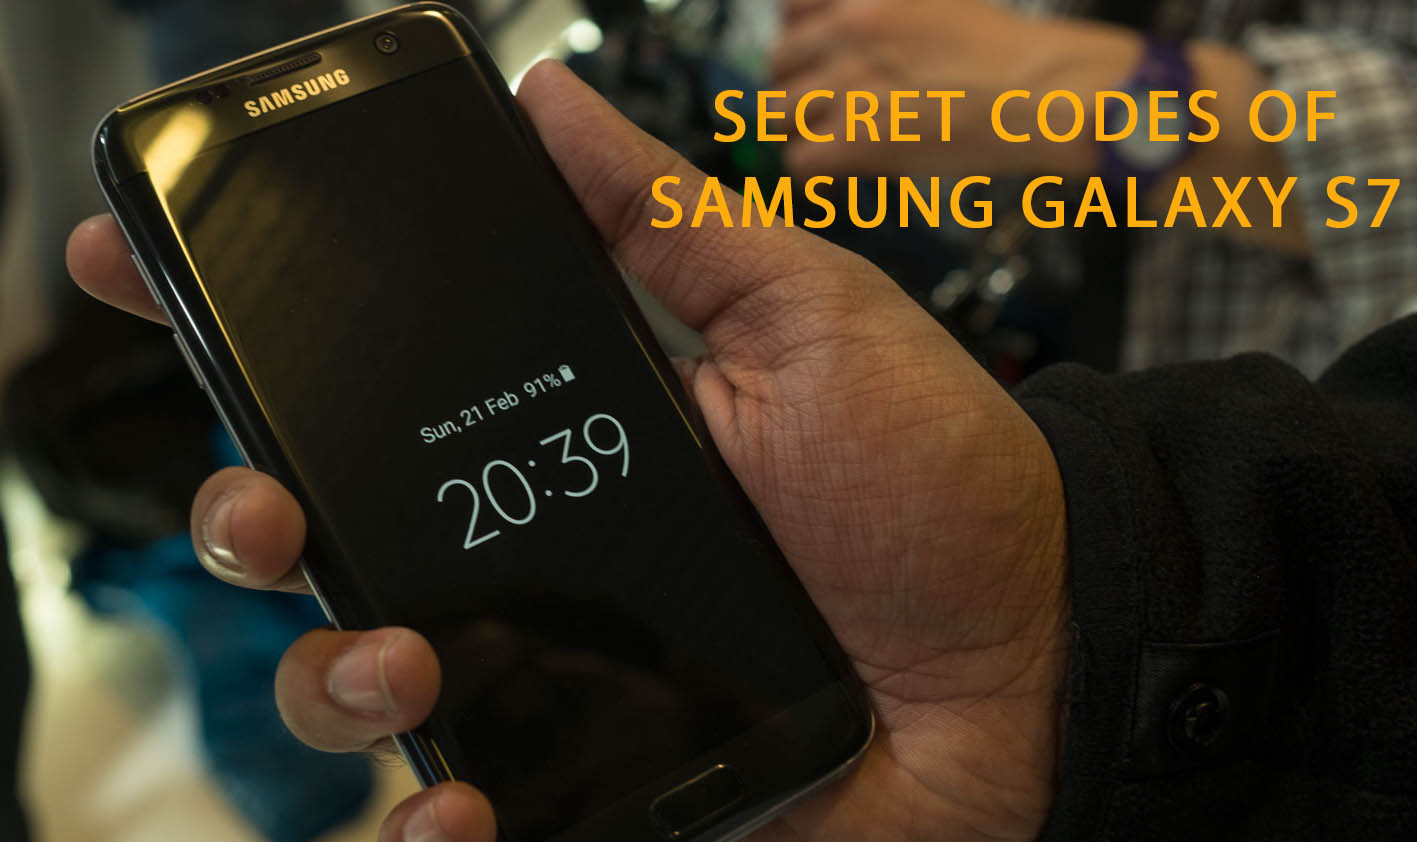 Samsung Galaxy S7 Secret Codes and Hidden Menu